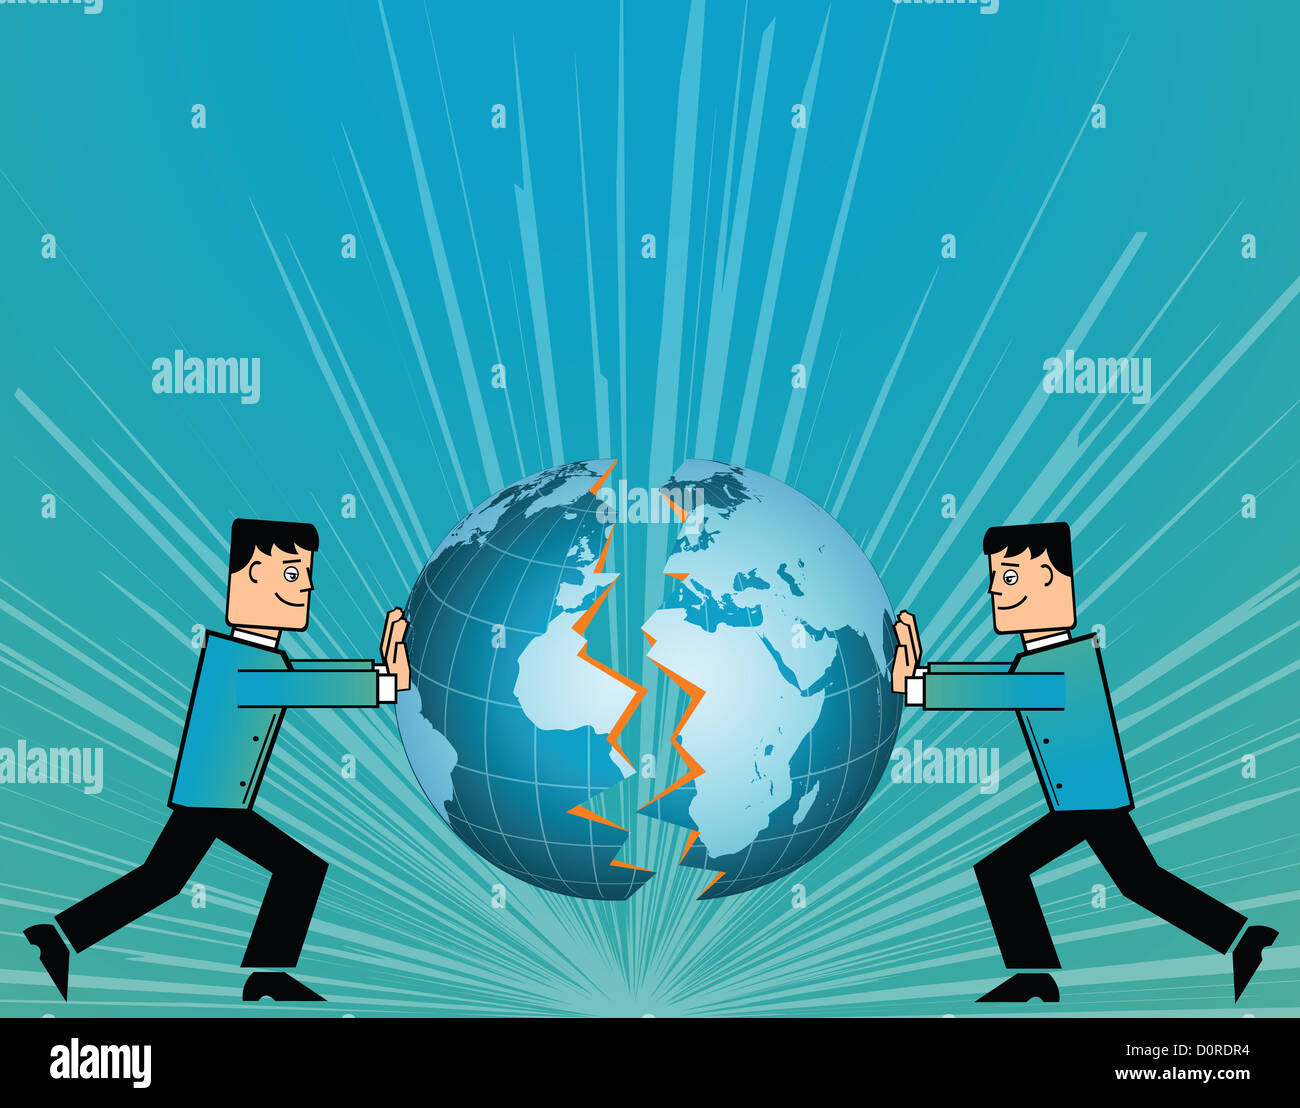 Conceptual image representing the collaboration of two companies - Stock Image